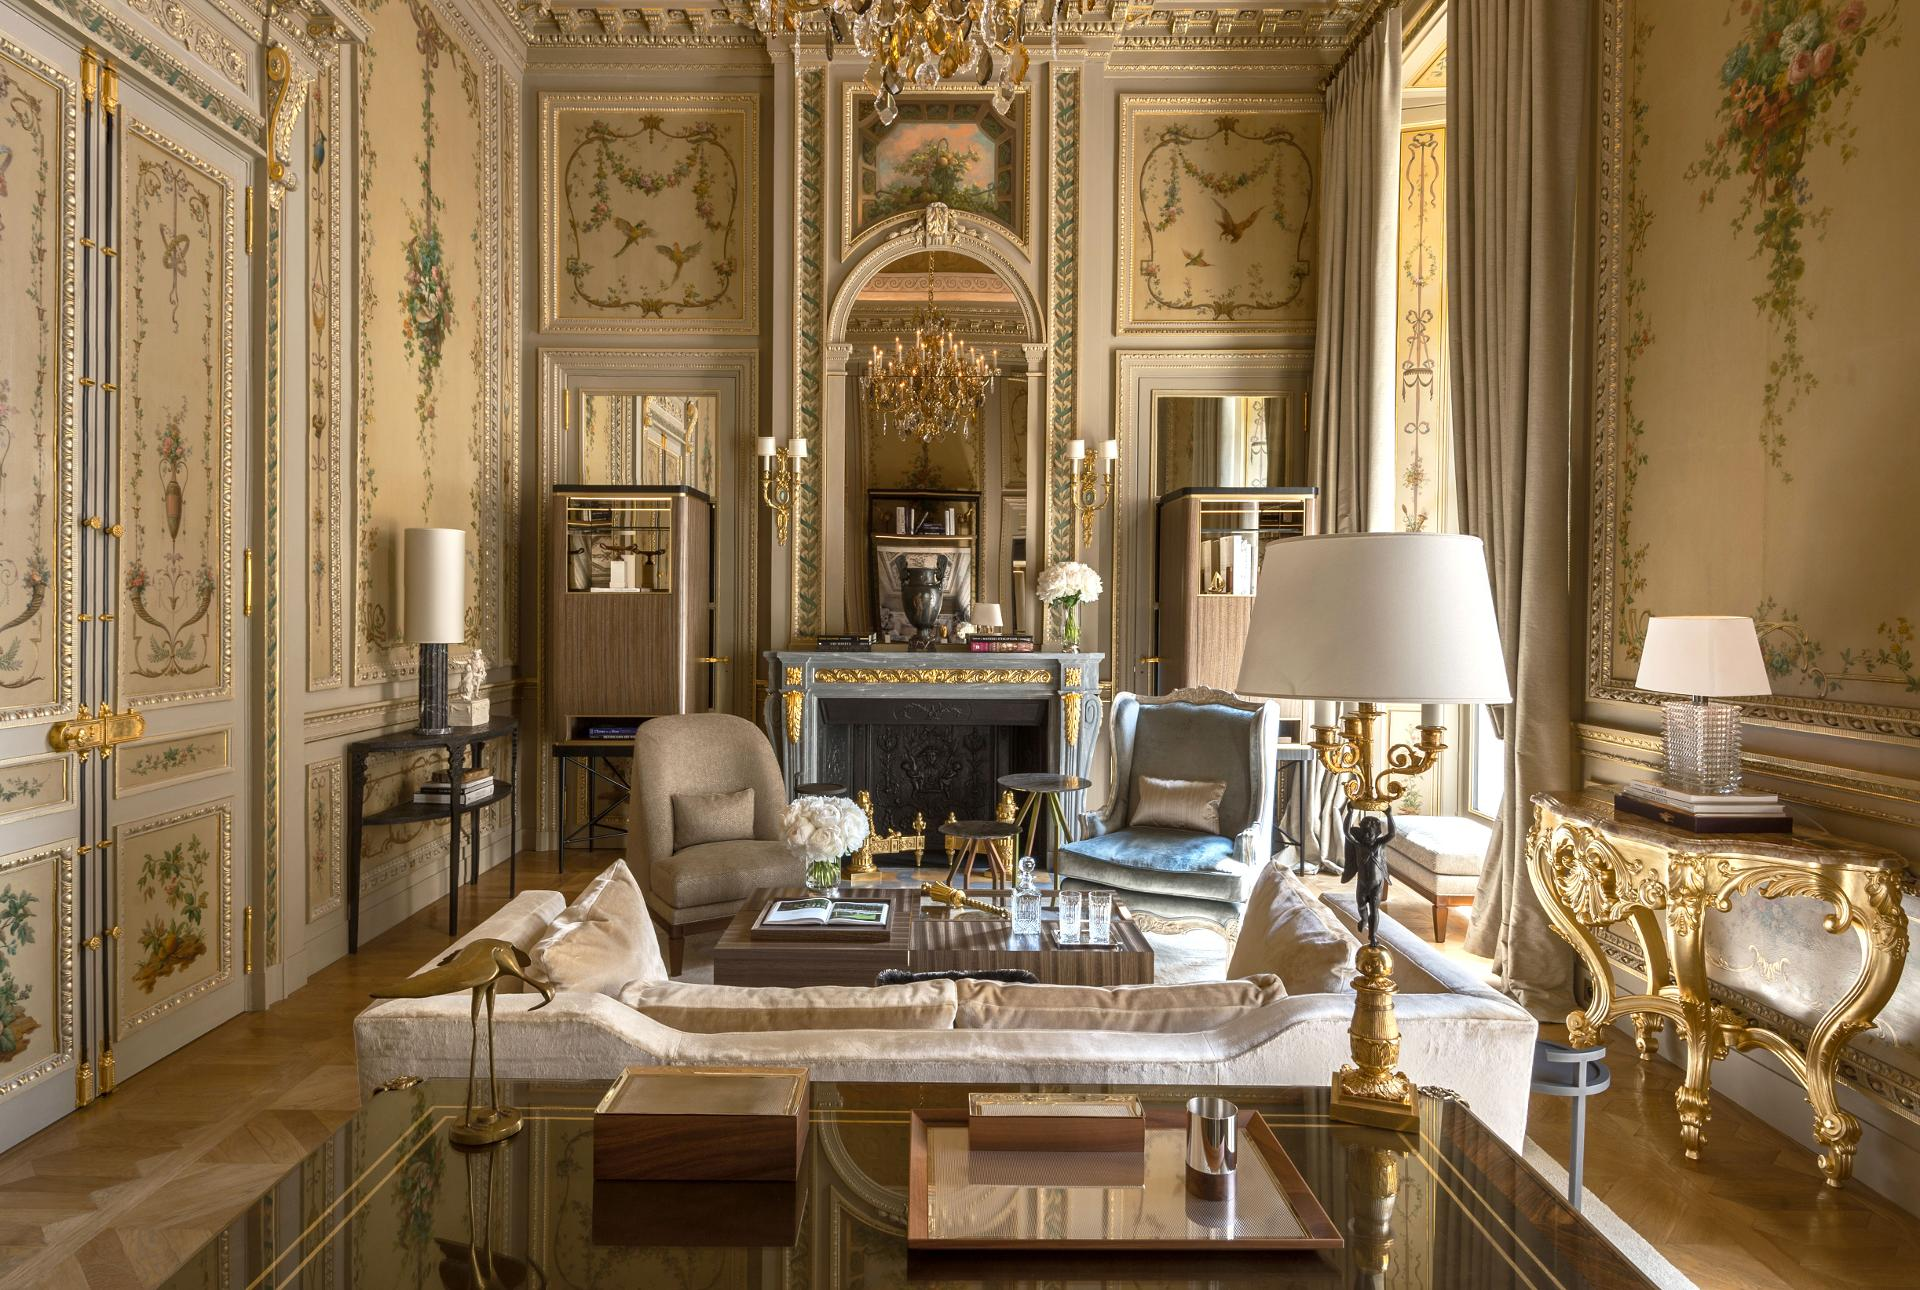 Housed in an 18th-century palace originally commissioned by Louis XV, Paris' newly renovated Hôtel de Crillon, A Rosewood Hotel blends classic grandeur with modern sophistication.